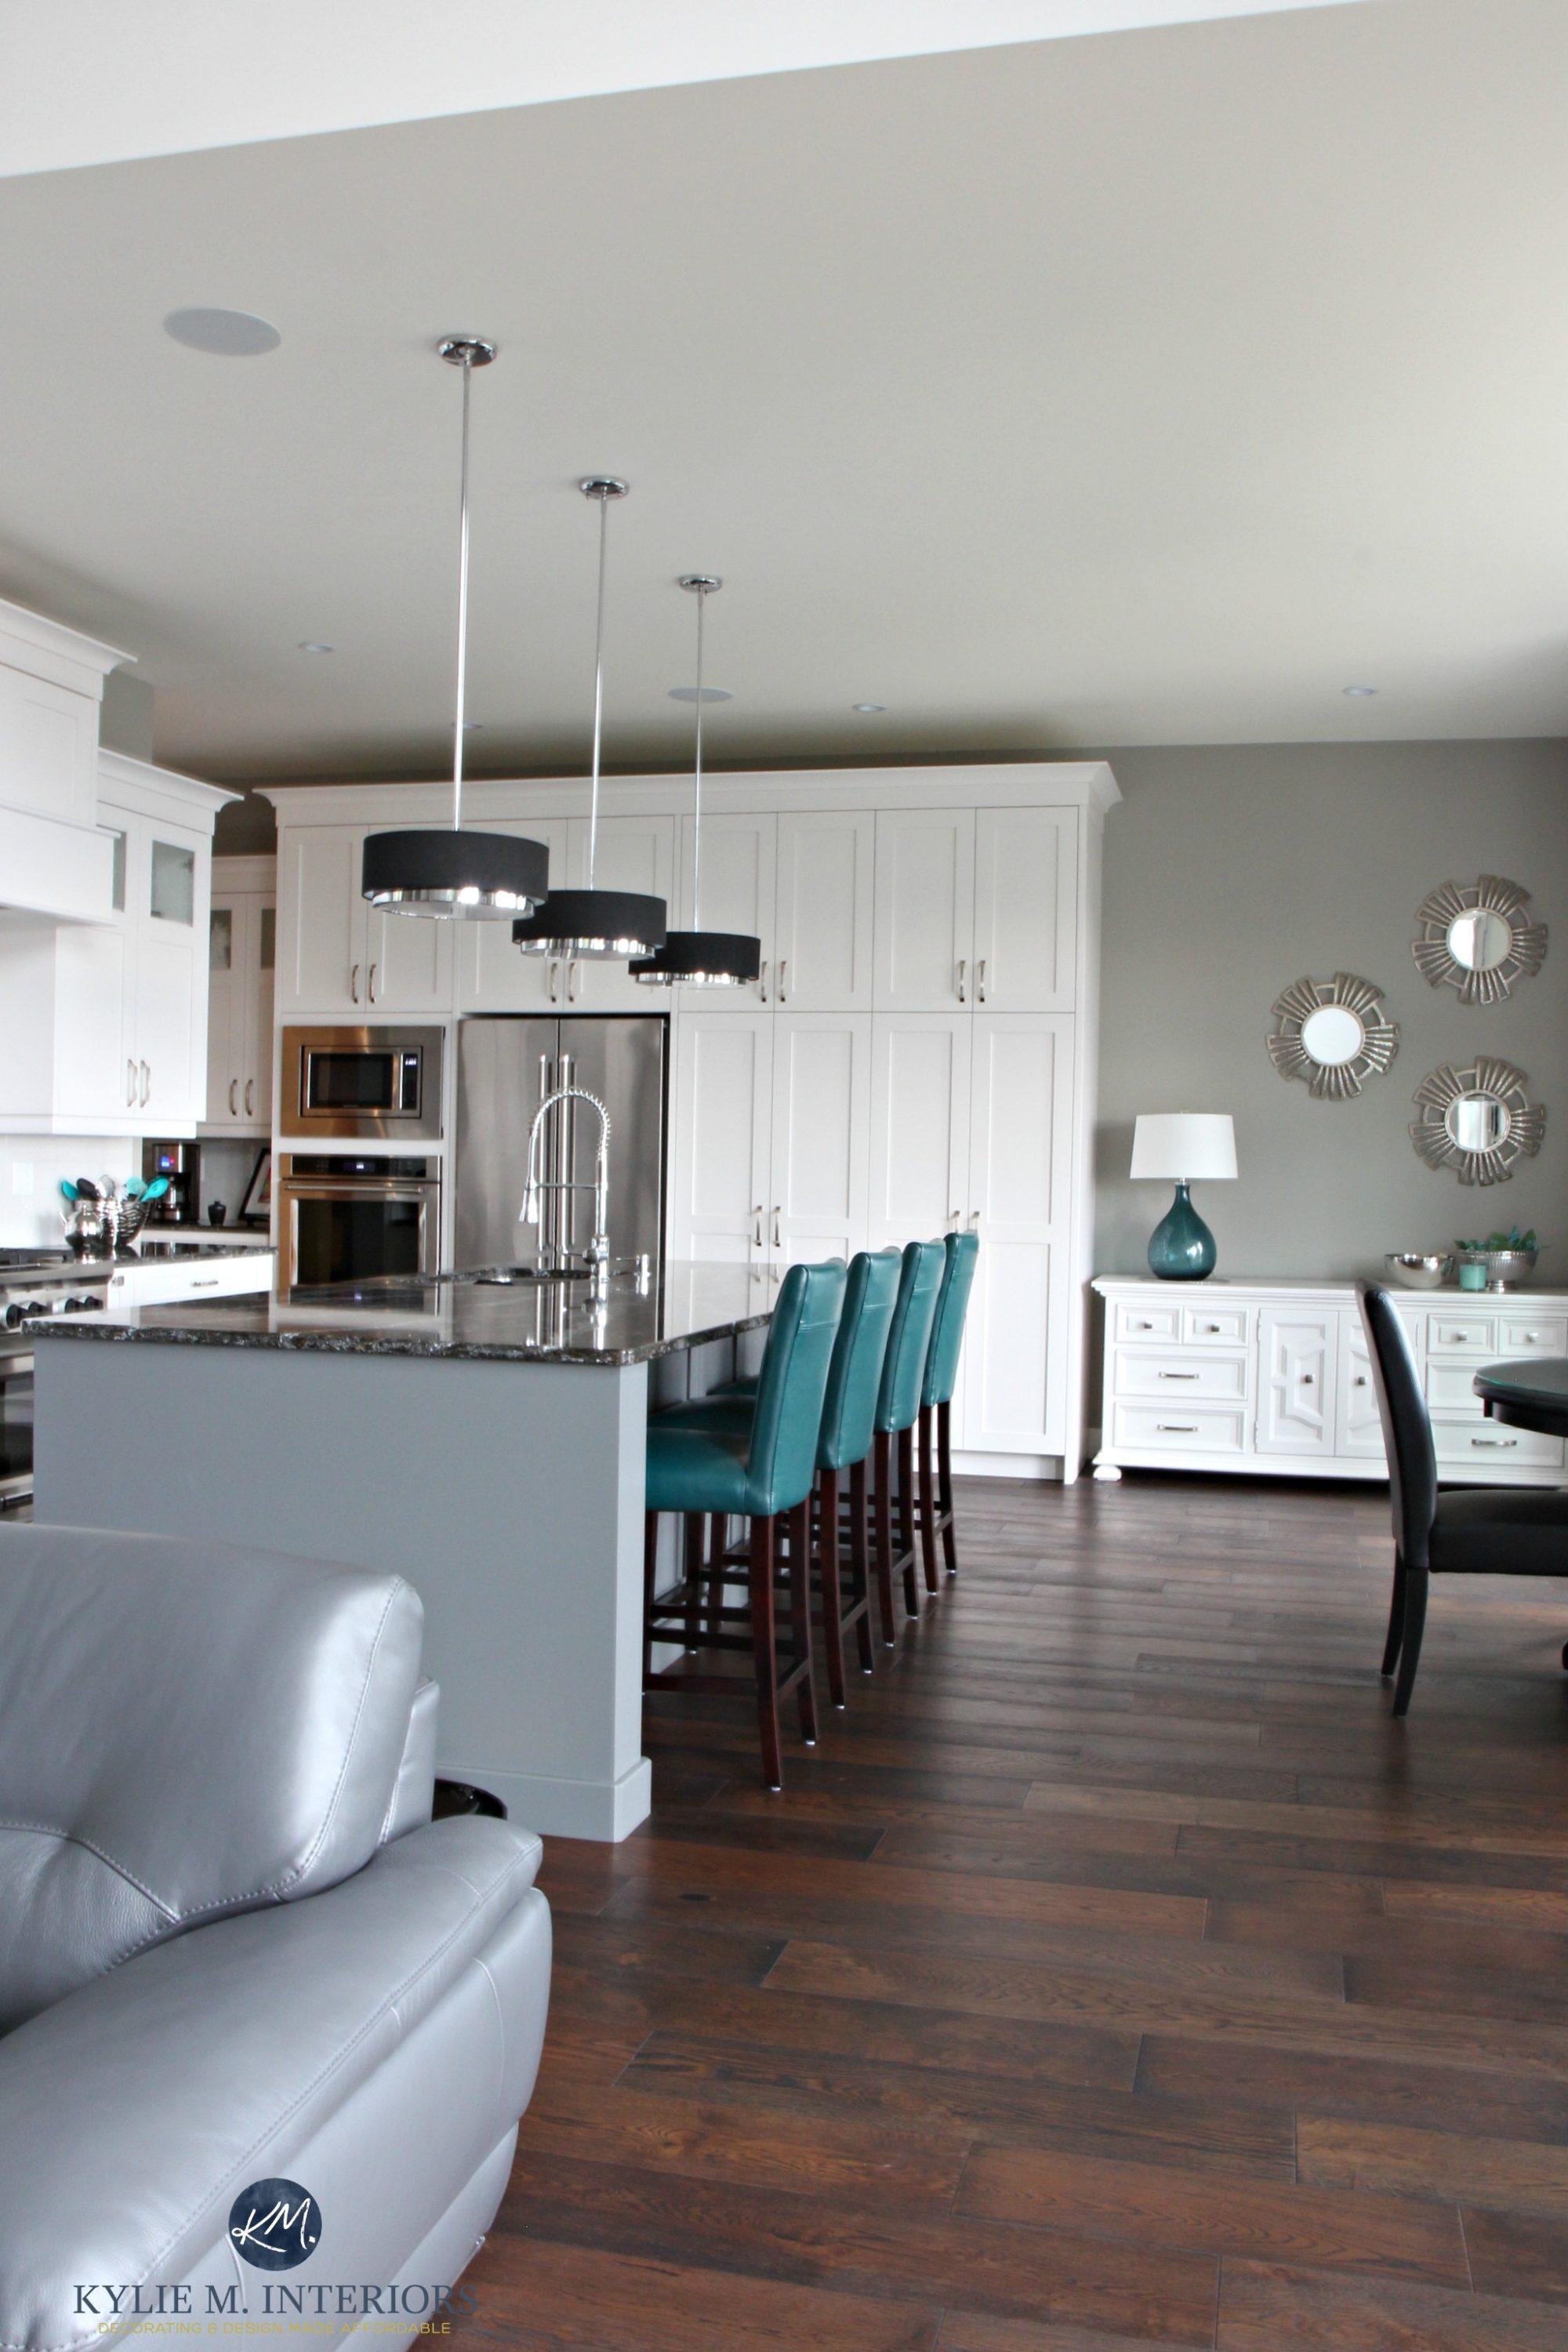 Open Layout White Kitch With Gray Painted Island, Teal Accents. Sherwin  Williams Dorian Gray. Kylie M Interiors E Decor, Online Consulting,  Decorating And ...